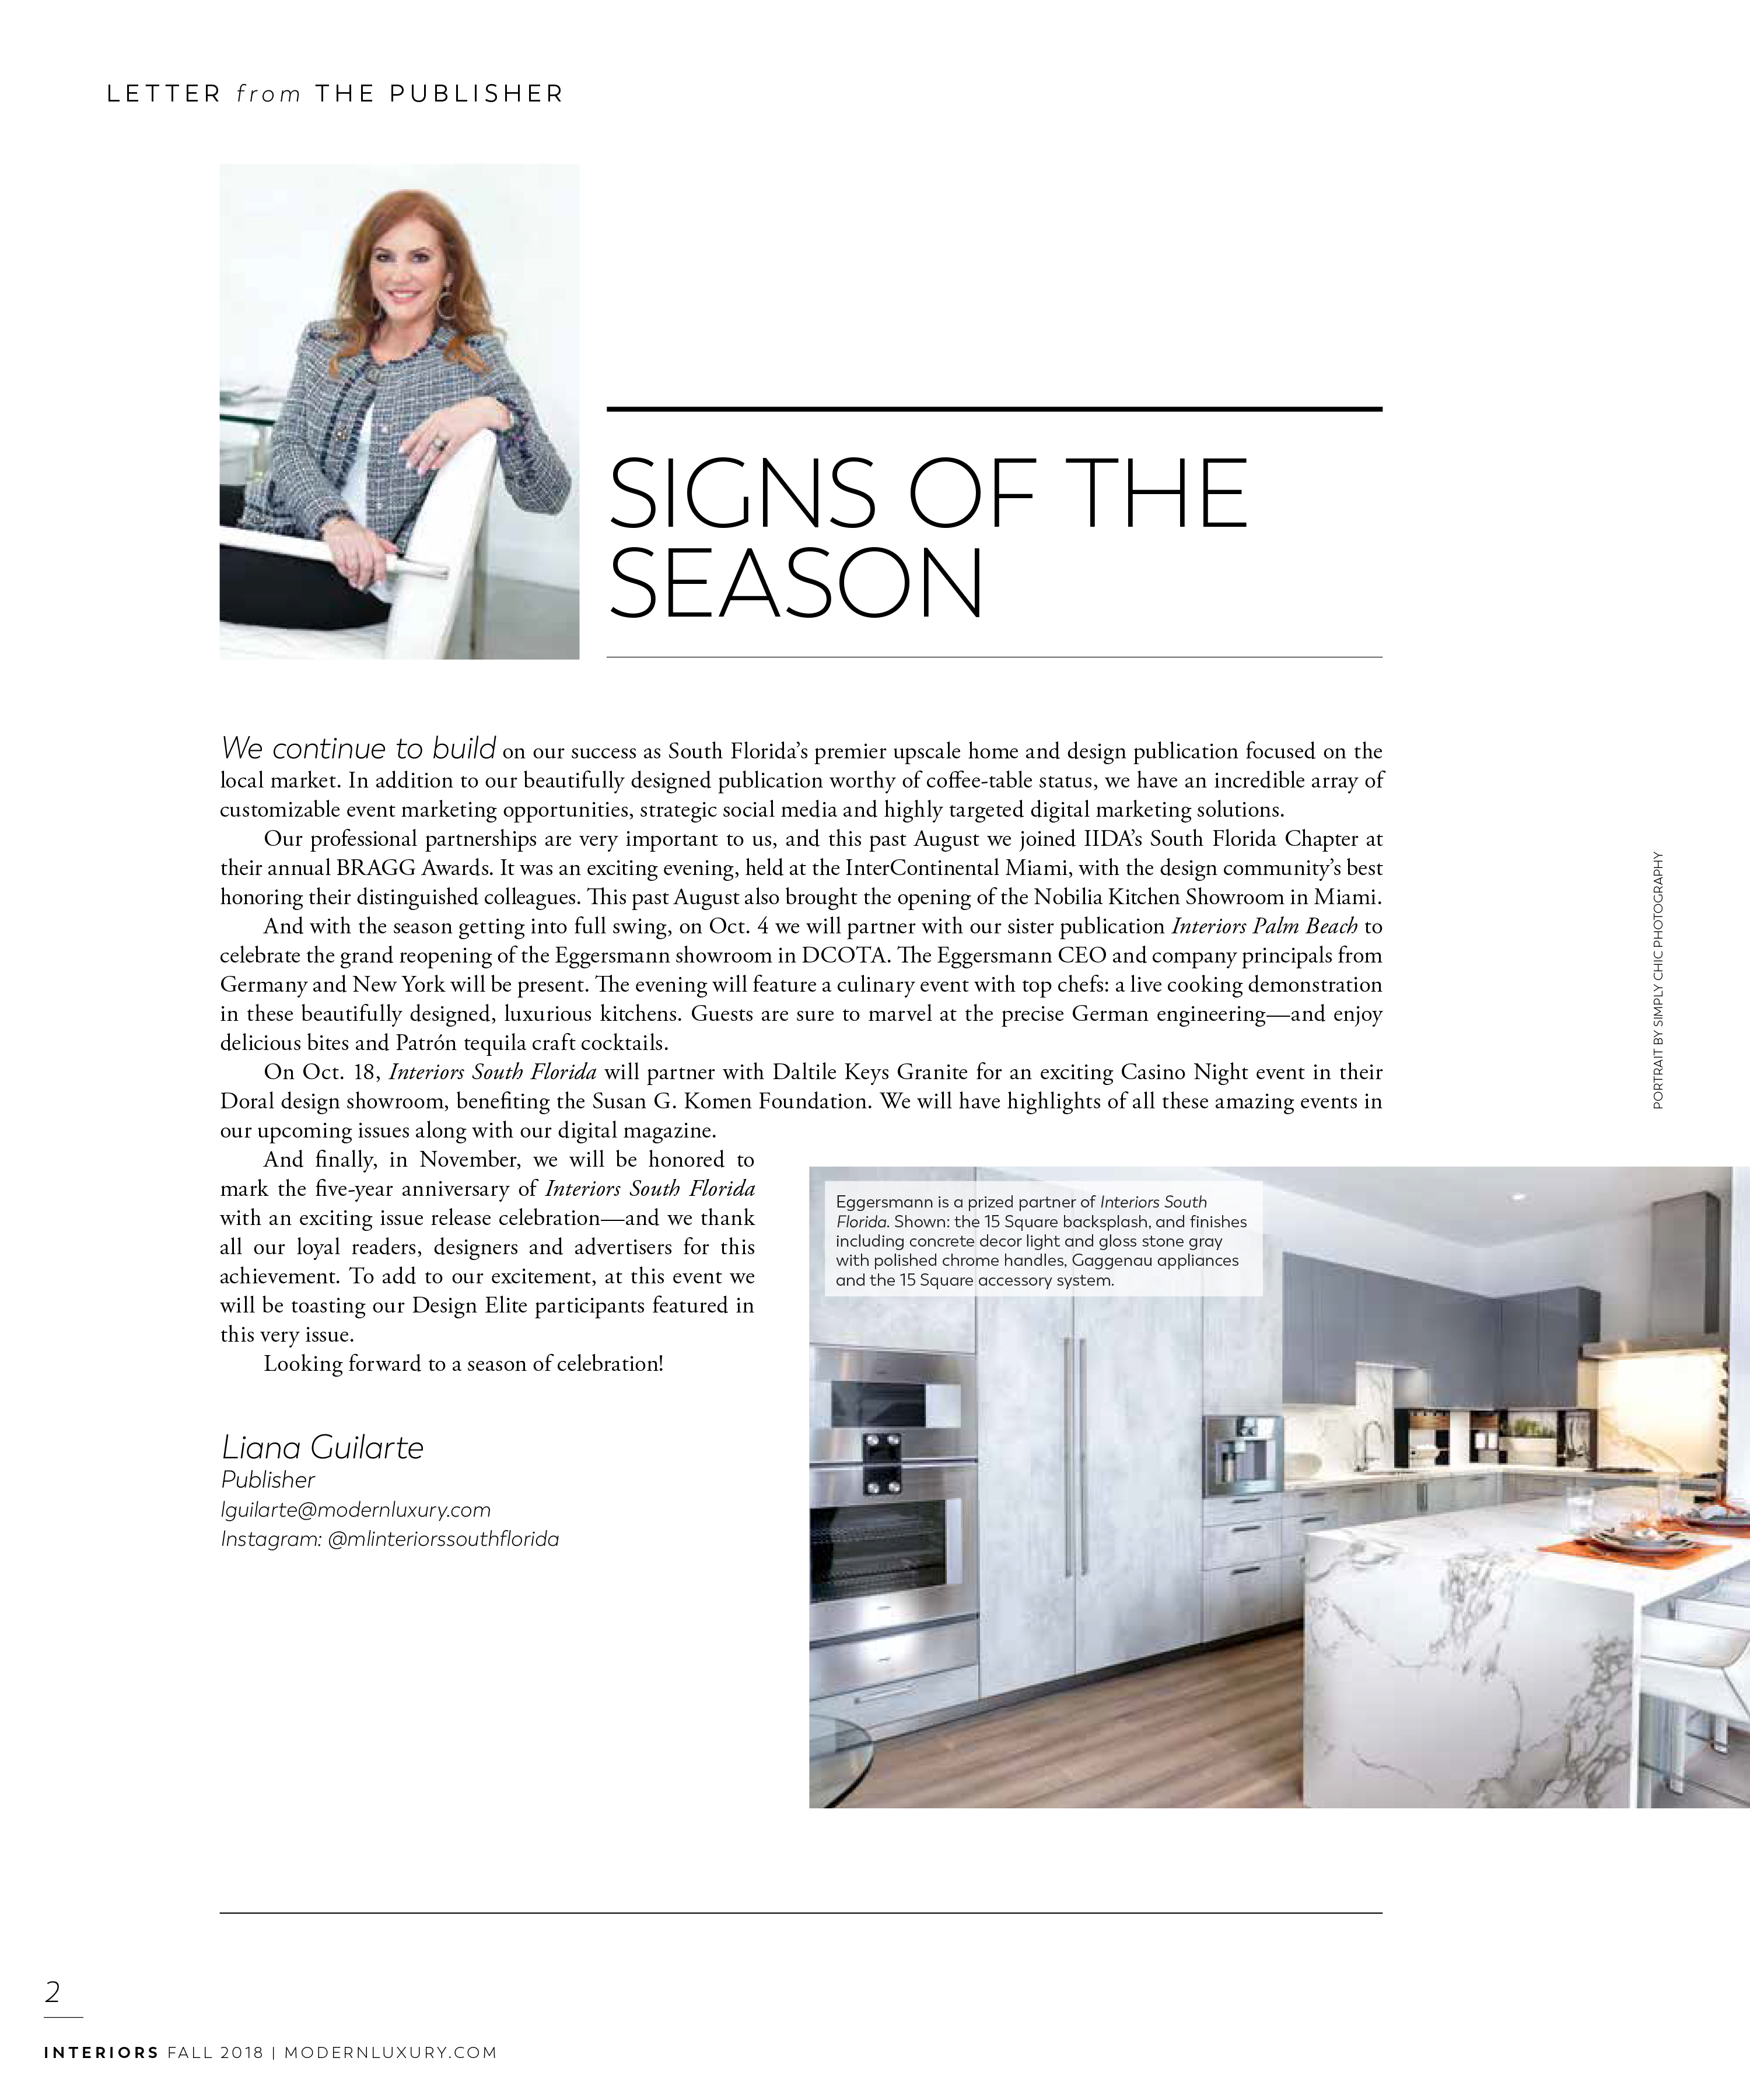 artical in modern luxury interiors florida about eggersmann's grand opening of the newly renovated showroom in the DCOTA building